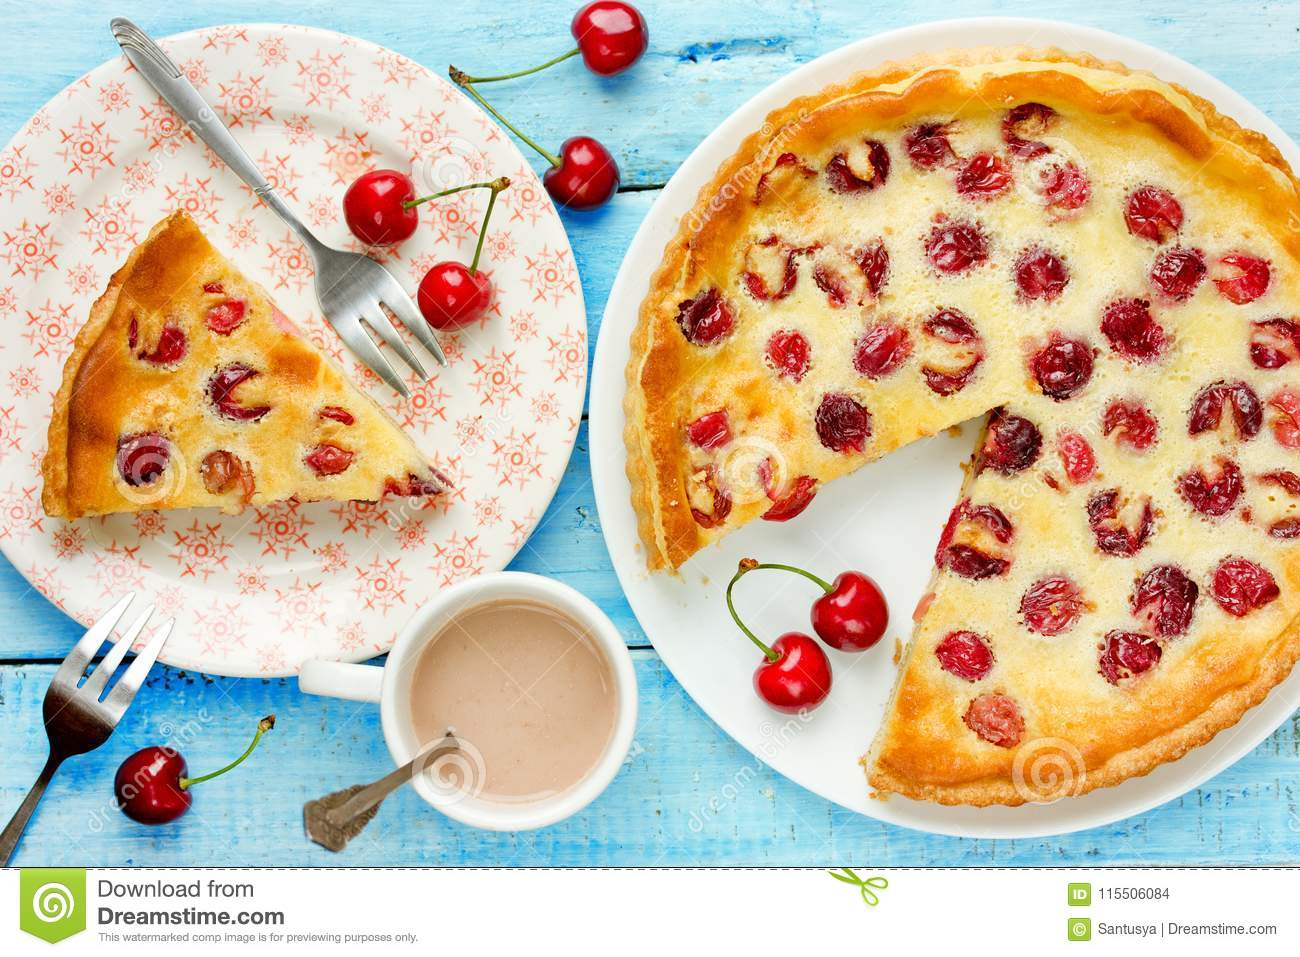 Tart with cherry and sour cream filling, fruit pie, summer cake